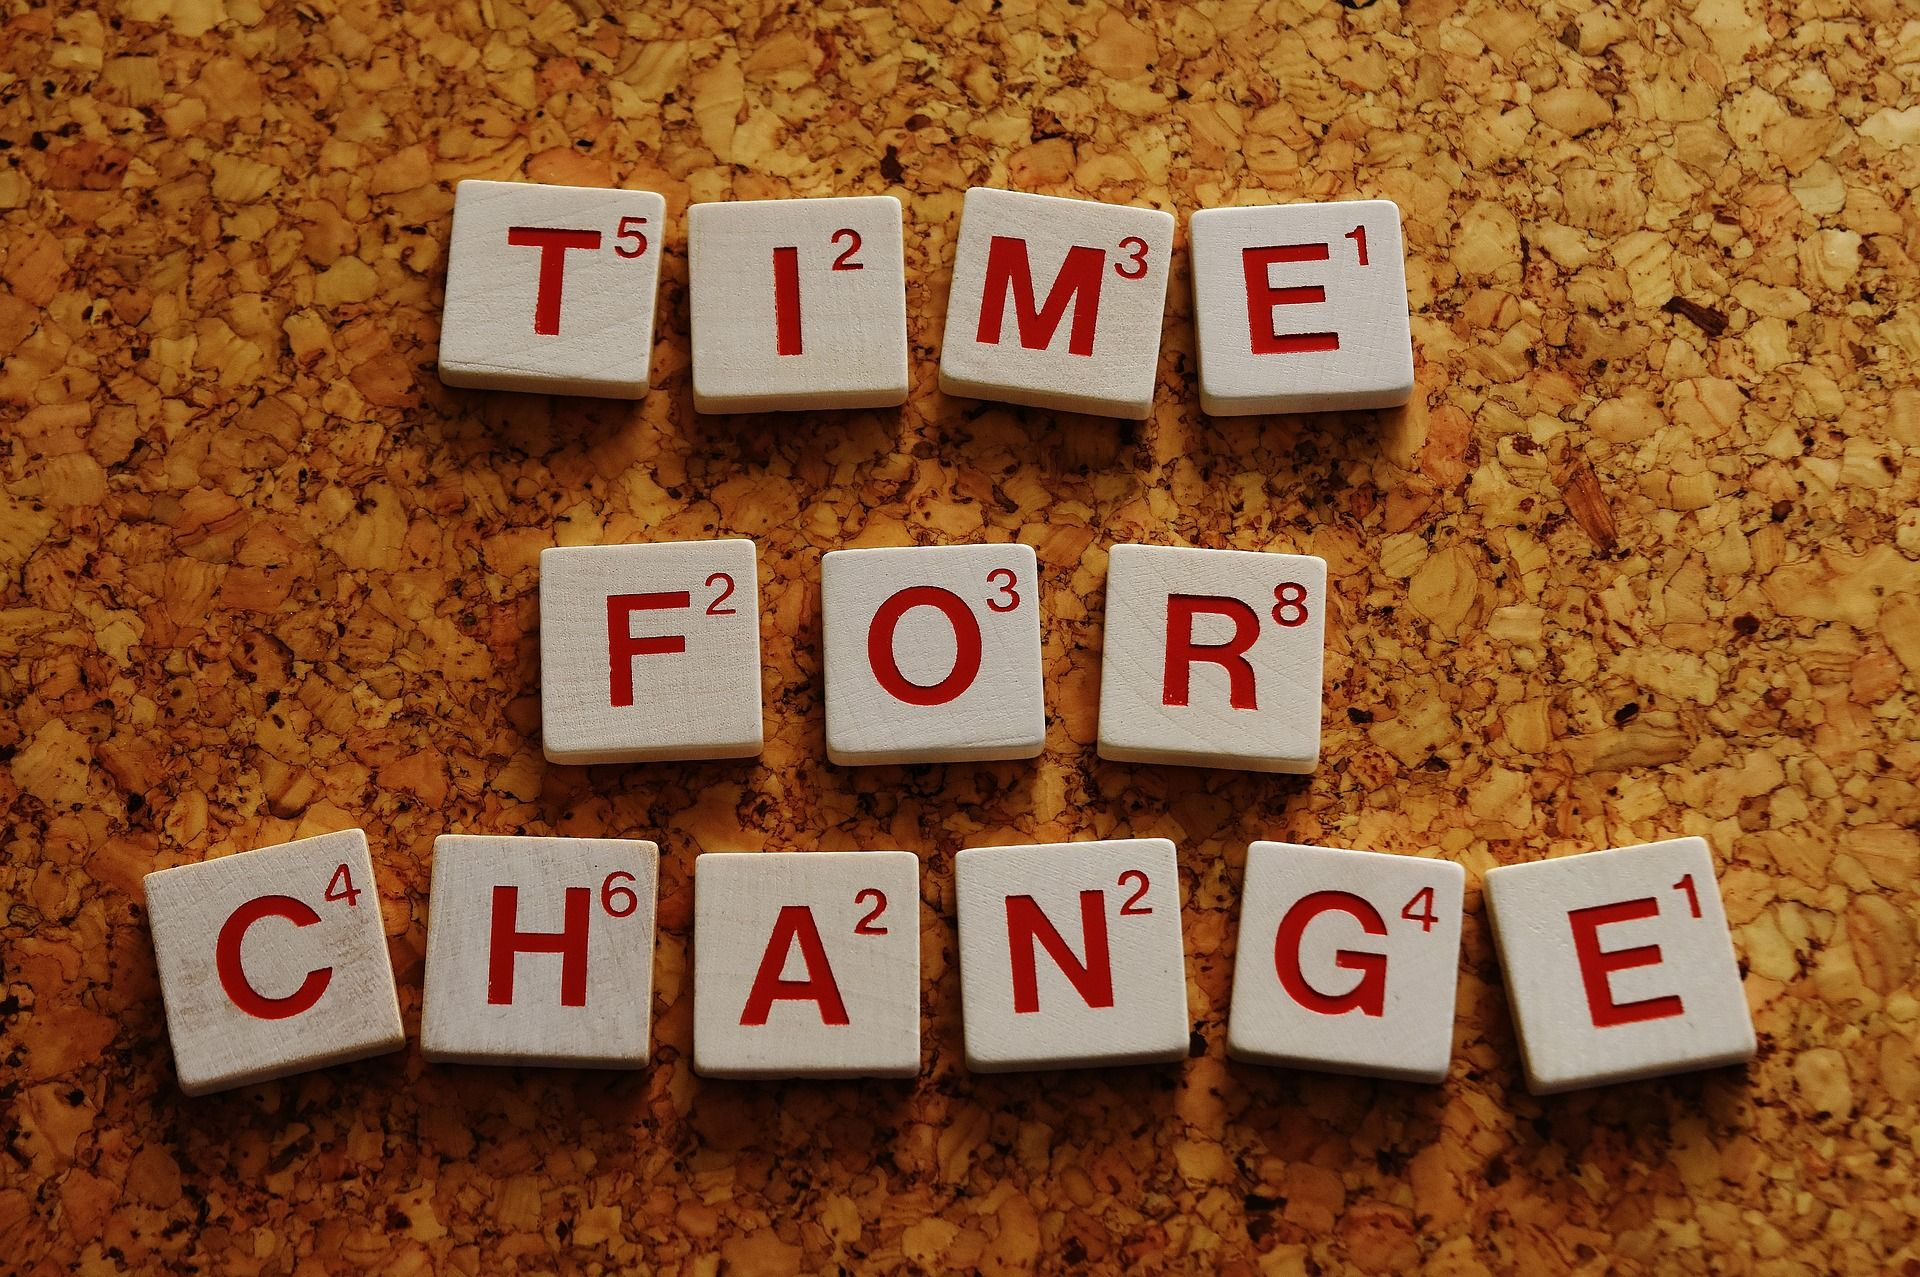 How Do You Create A Culture Of Anything First You Talk About It A Lot Then You Integrate It In To Your Daily Life Style Time For Change Change Is Good Change